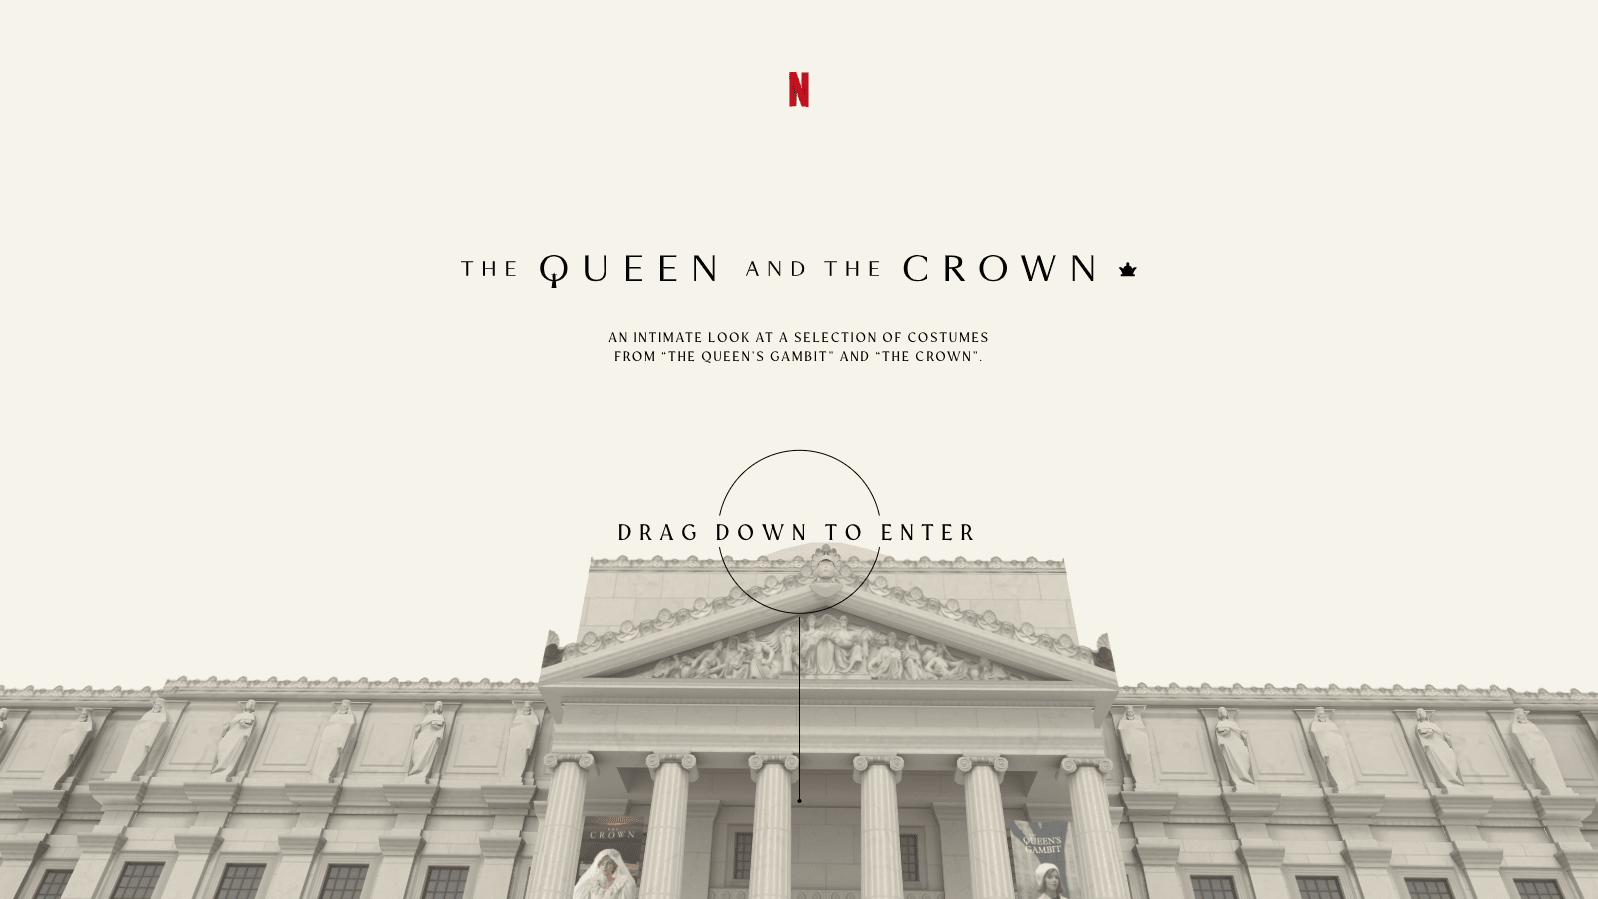 The Queen and The Crown